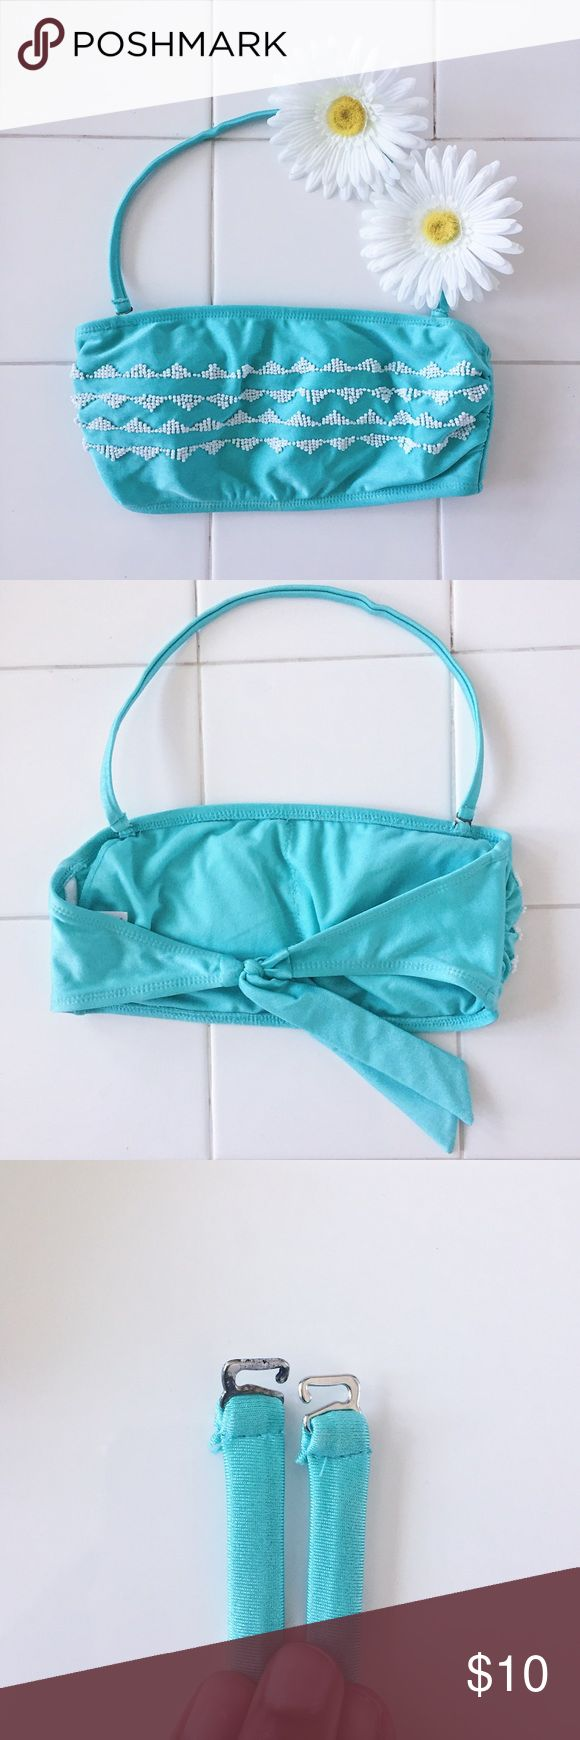 Turquoise Bandeau Bikini Top Bandeau bikini top with white beaded triangle design. Beautiful turquoise color, my personal favorite. Removable straps and non-removable padding. Only worn a couple times. No pilling or tears. Size S/P; recommended for A-B cup only. Victoria's Secret for exposure. From Target. Victoria's Secret Swim Bikinis